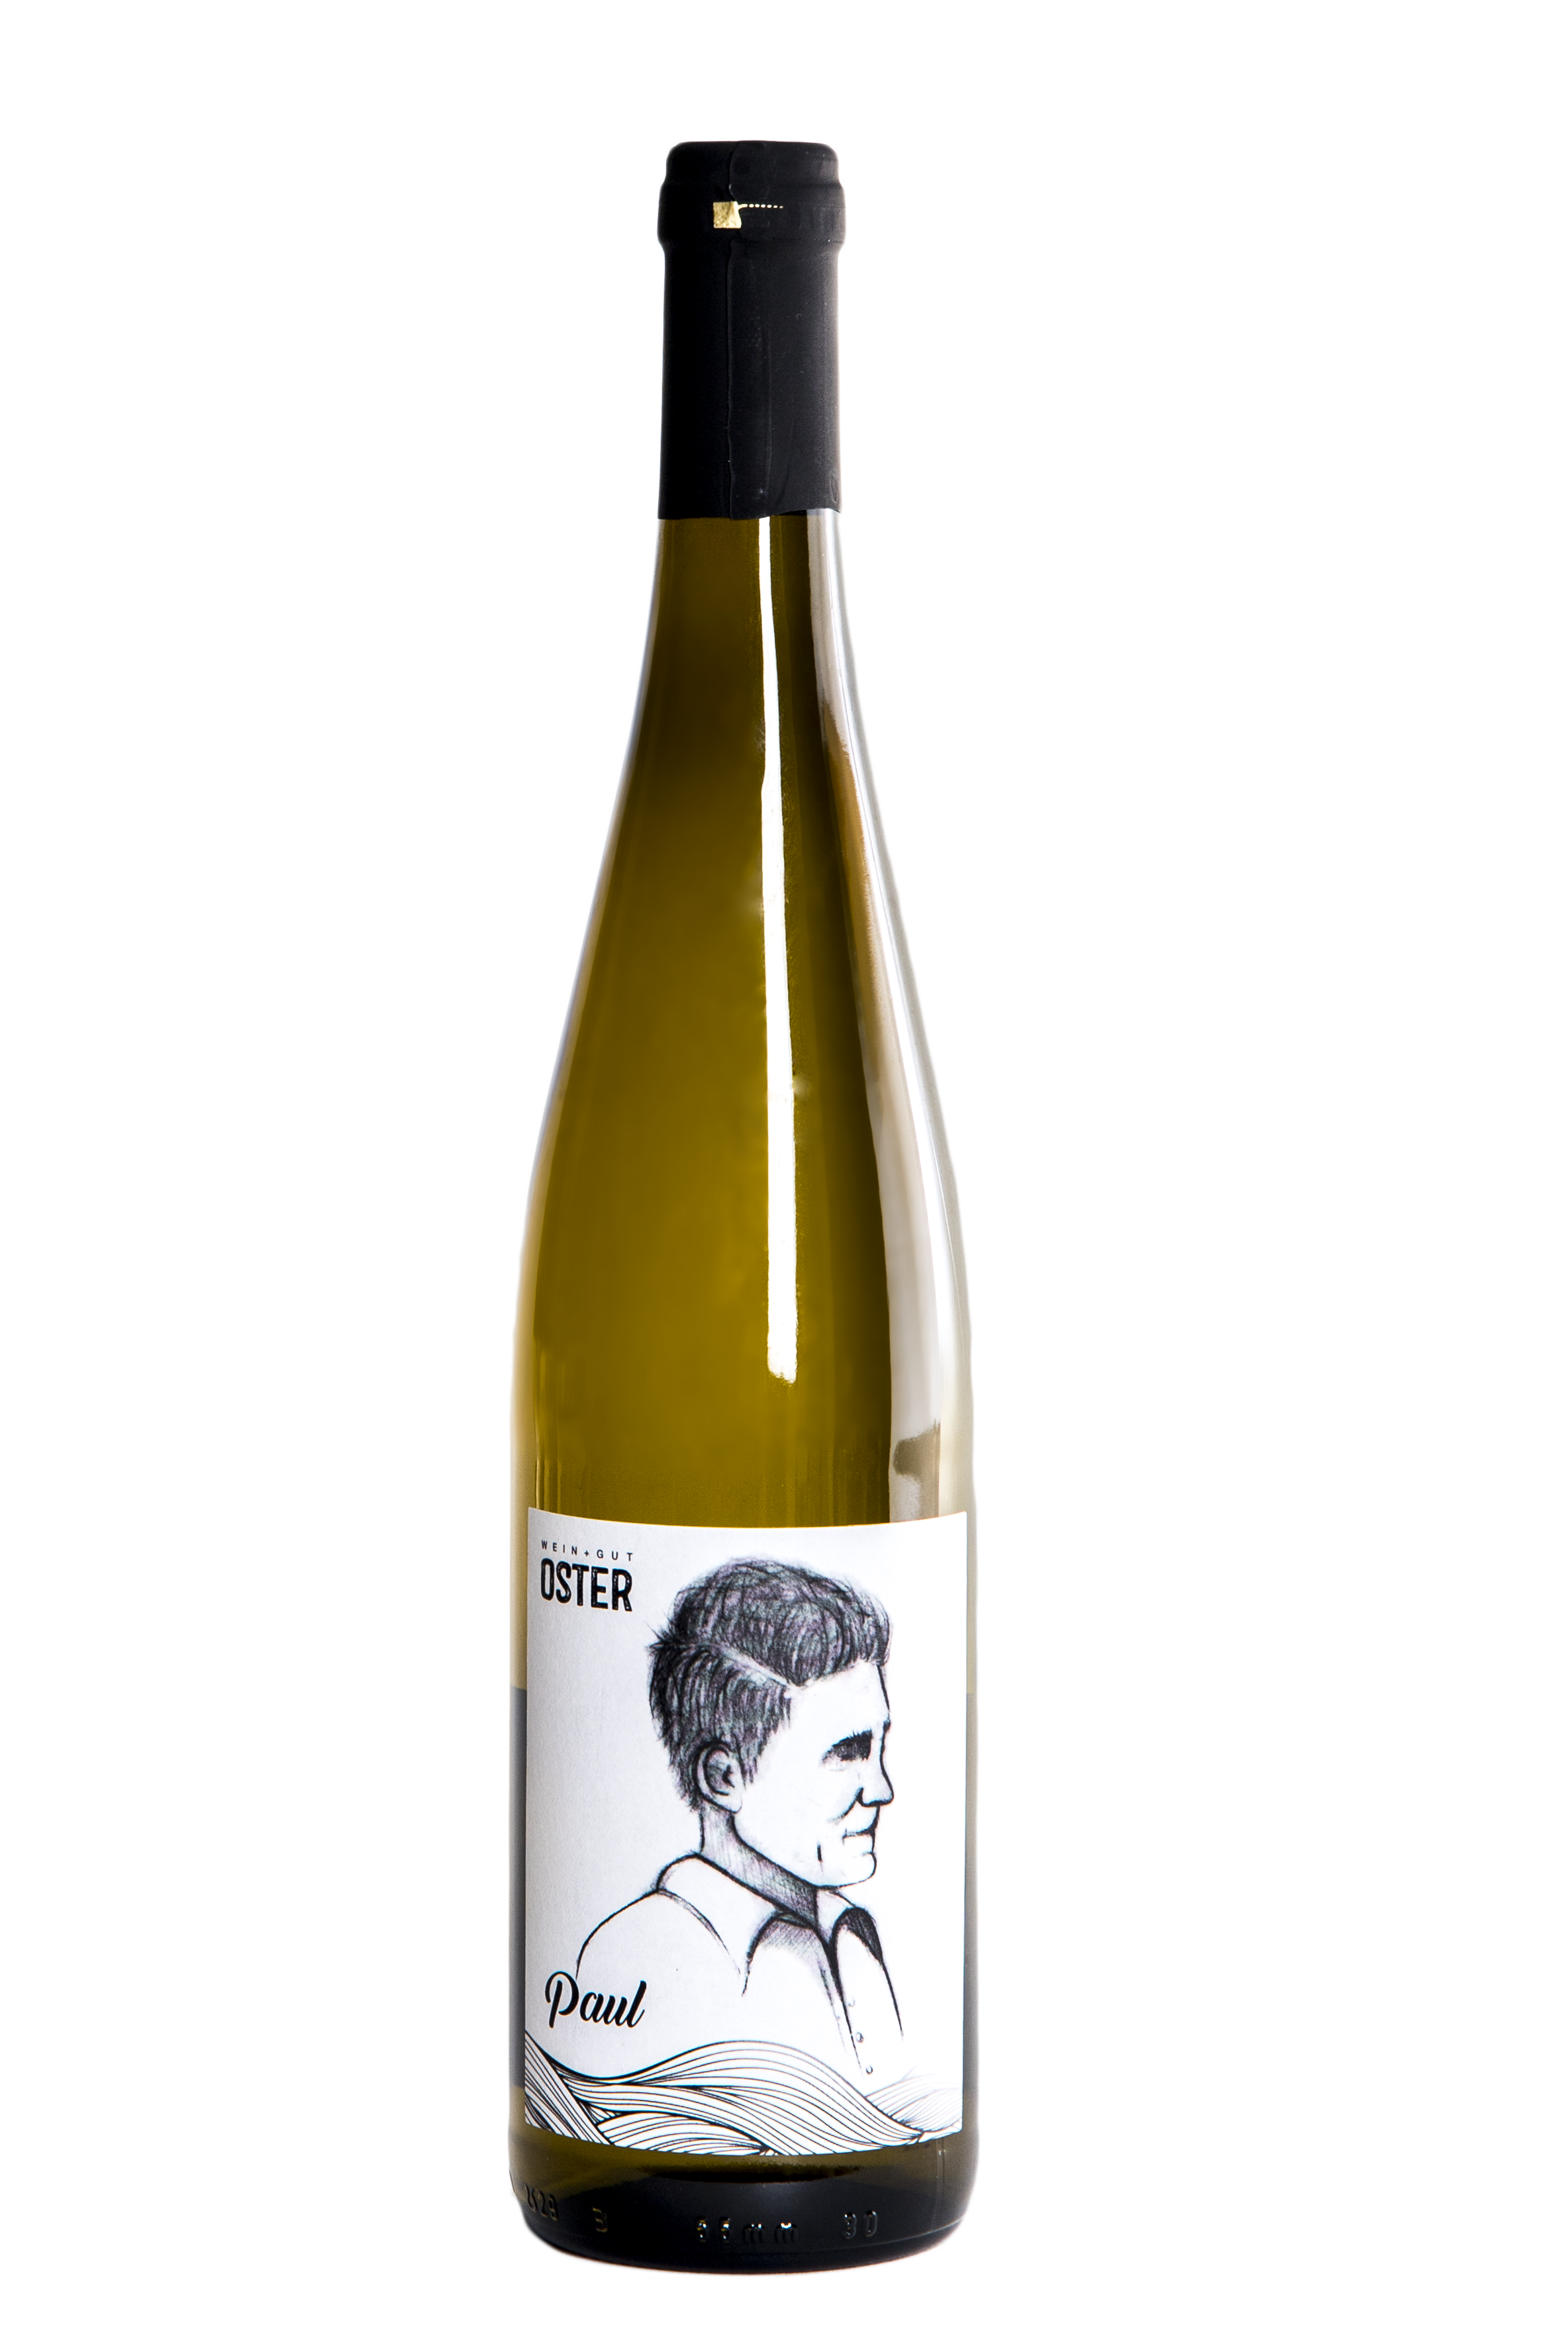 Oster »Paul« Riesling 2019